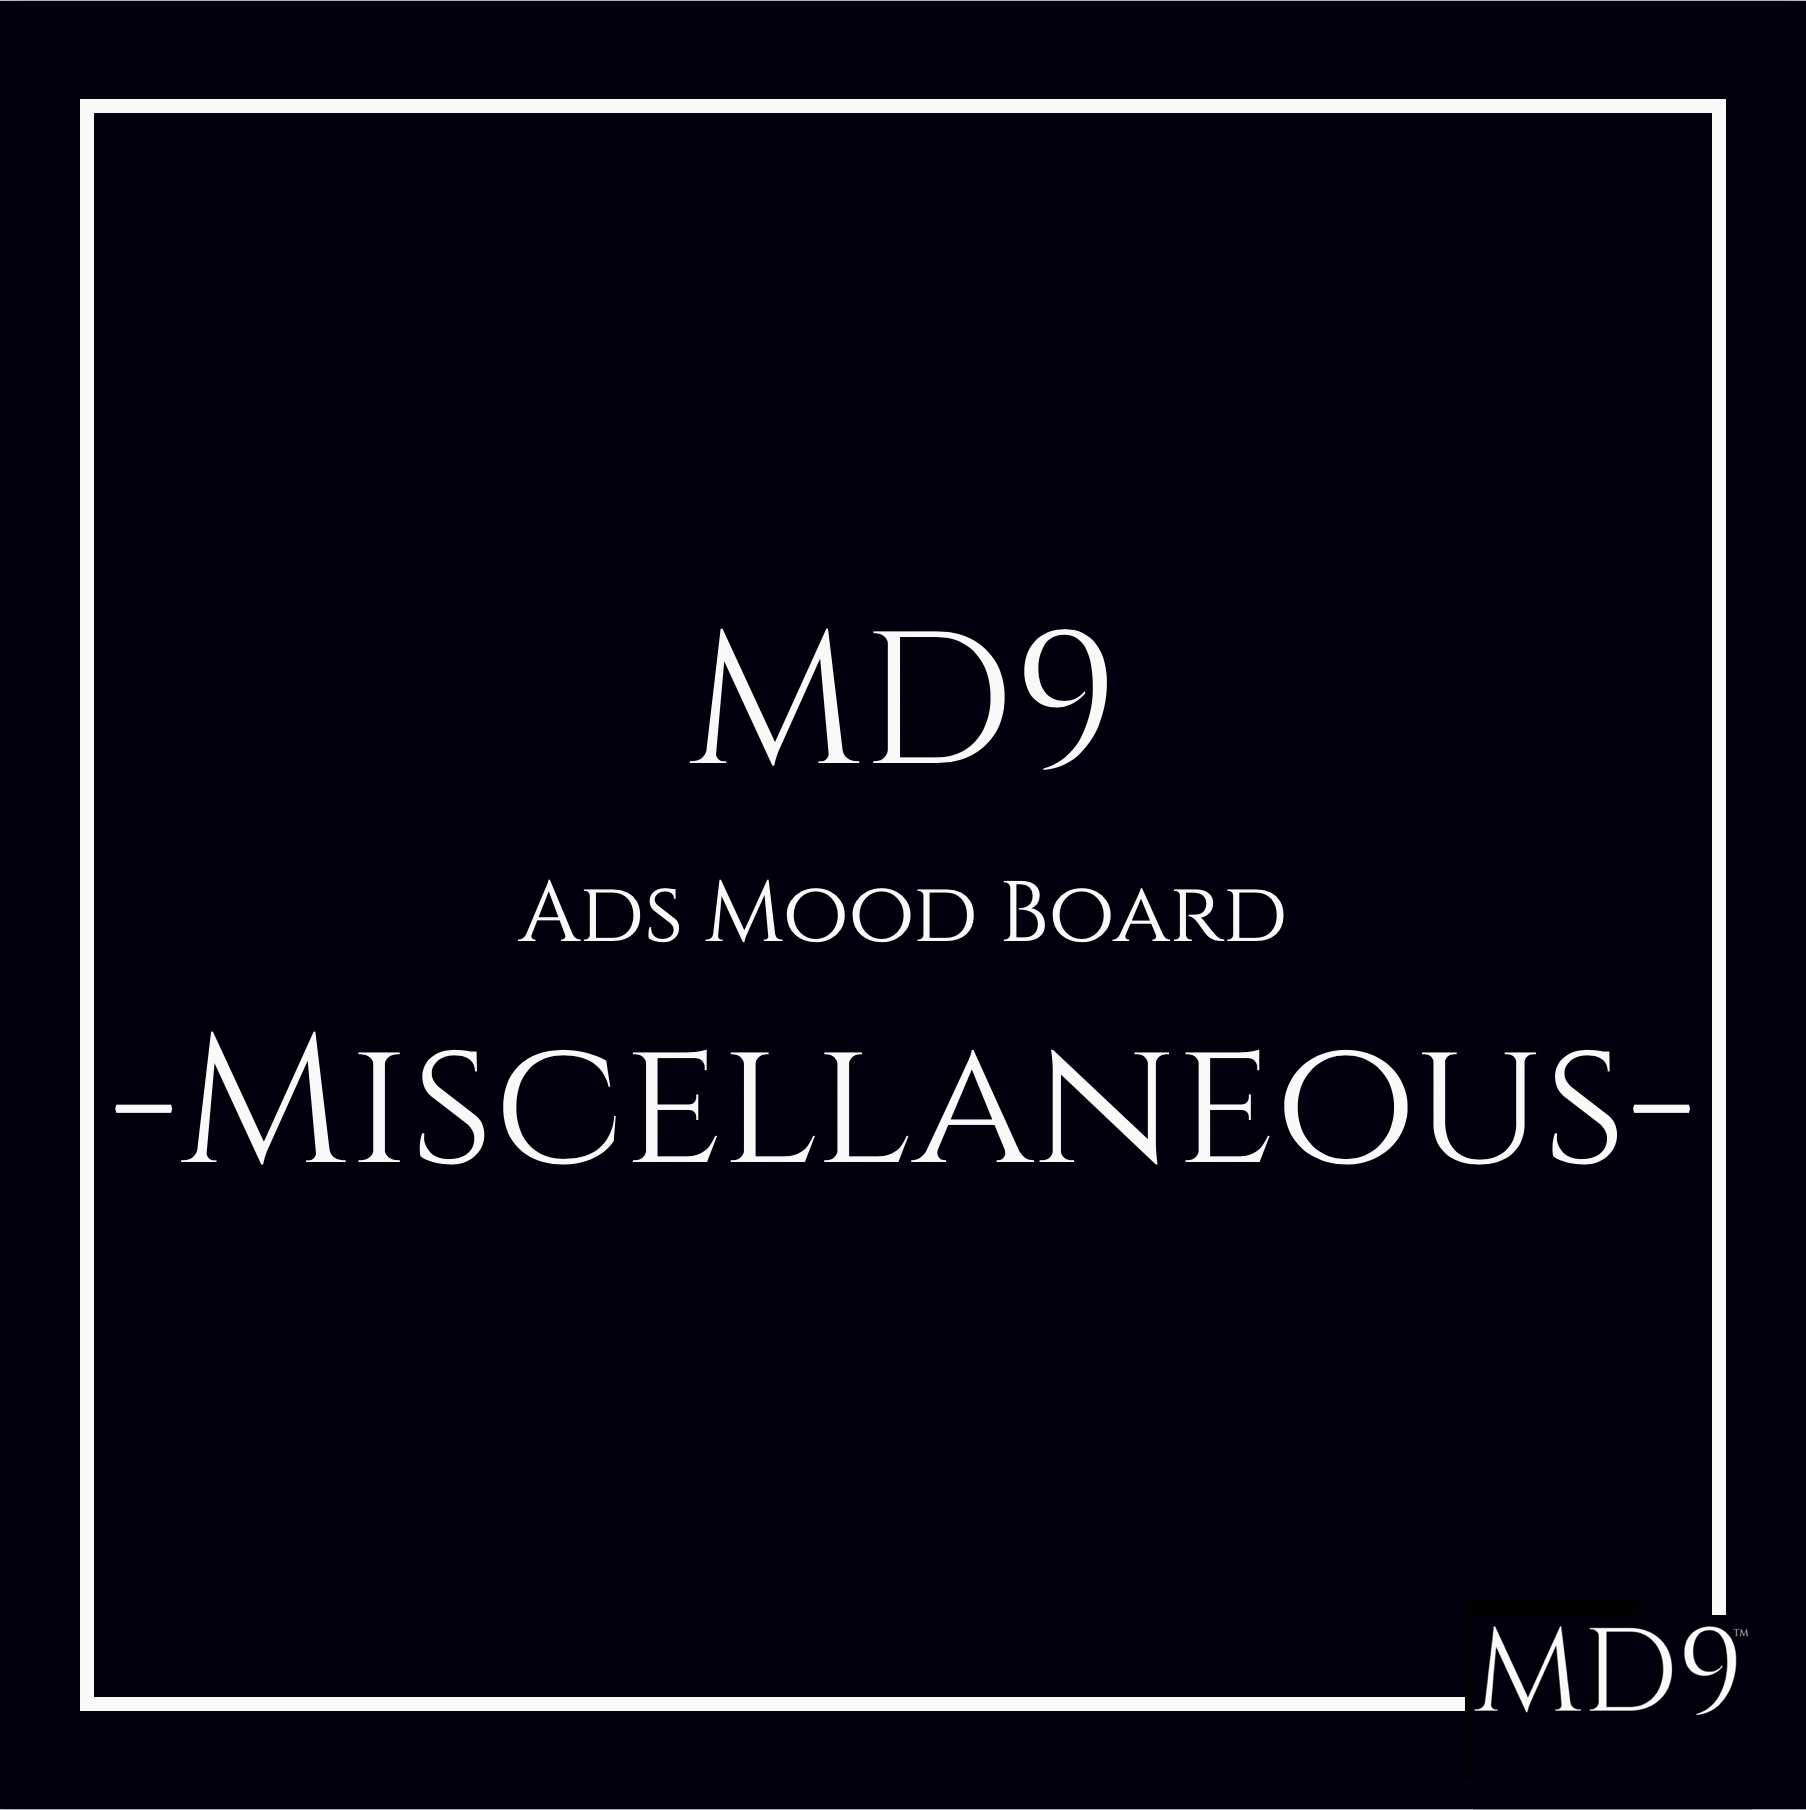 MD9's Ads Mood Board – Miscellaneous